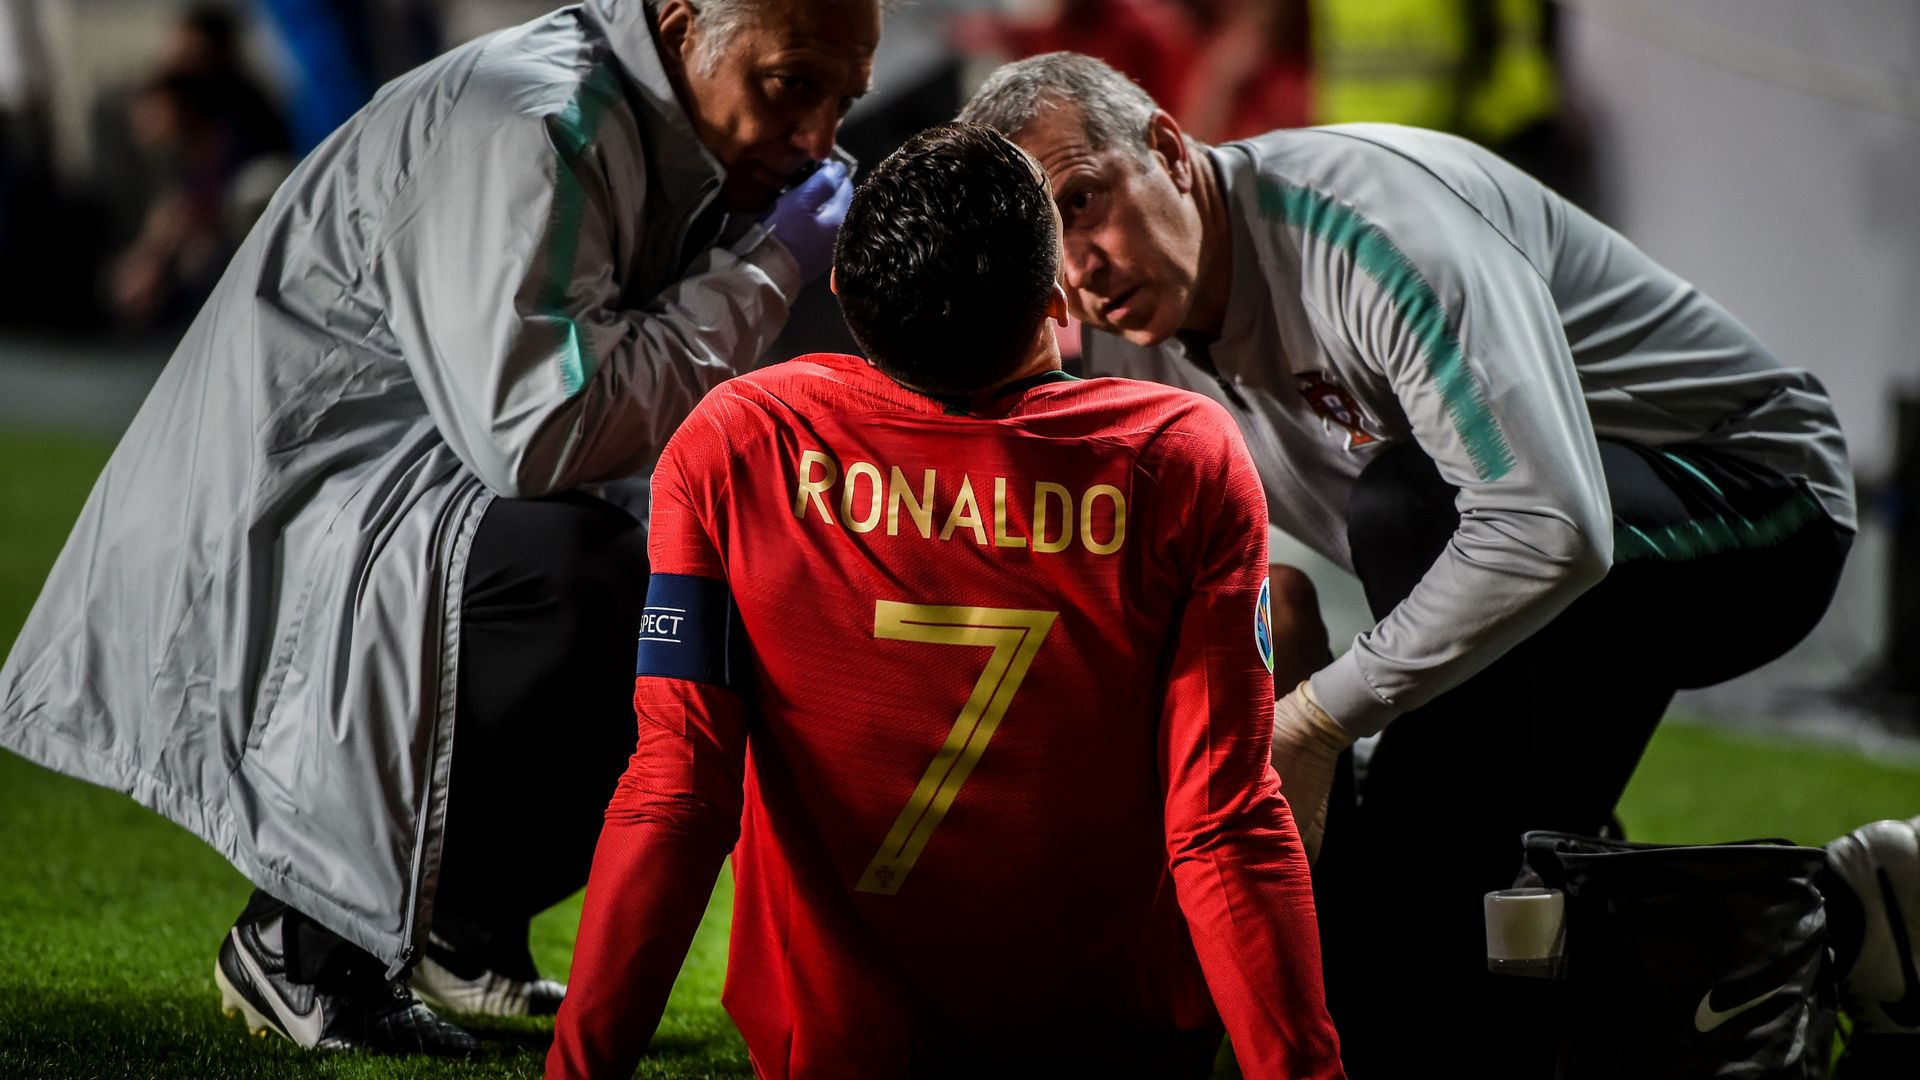 Ronaldo exits after leg injury in Portugal's Euro qualifier vs. Serbia